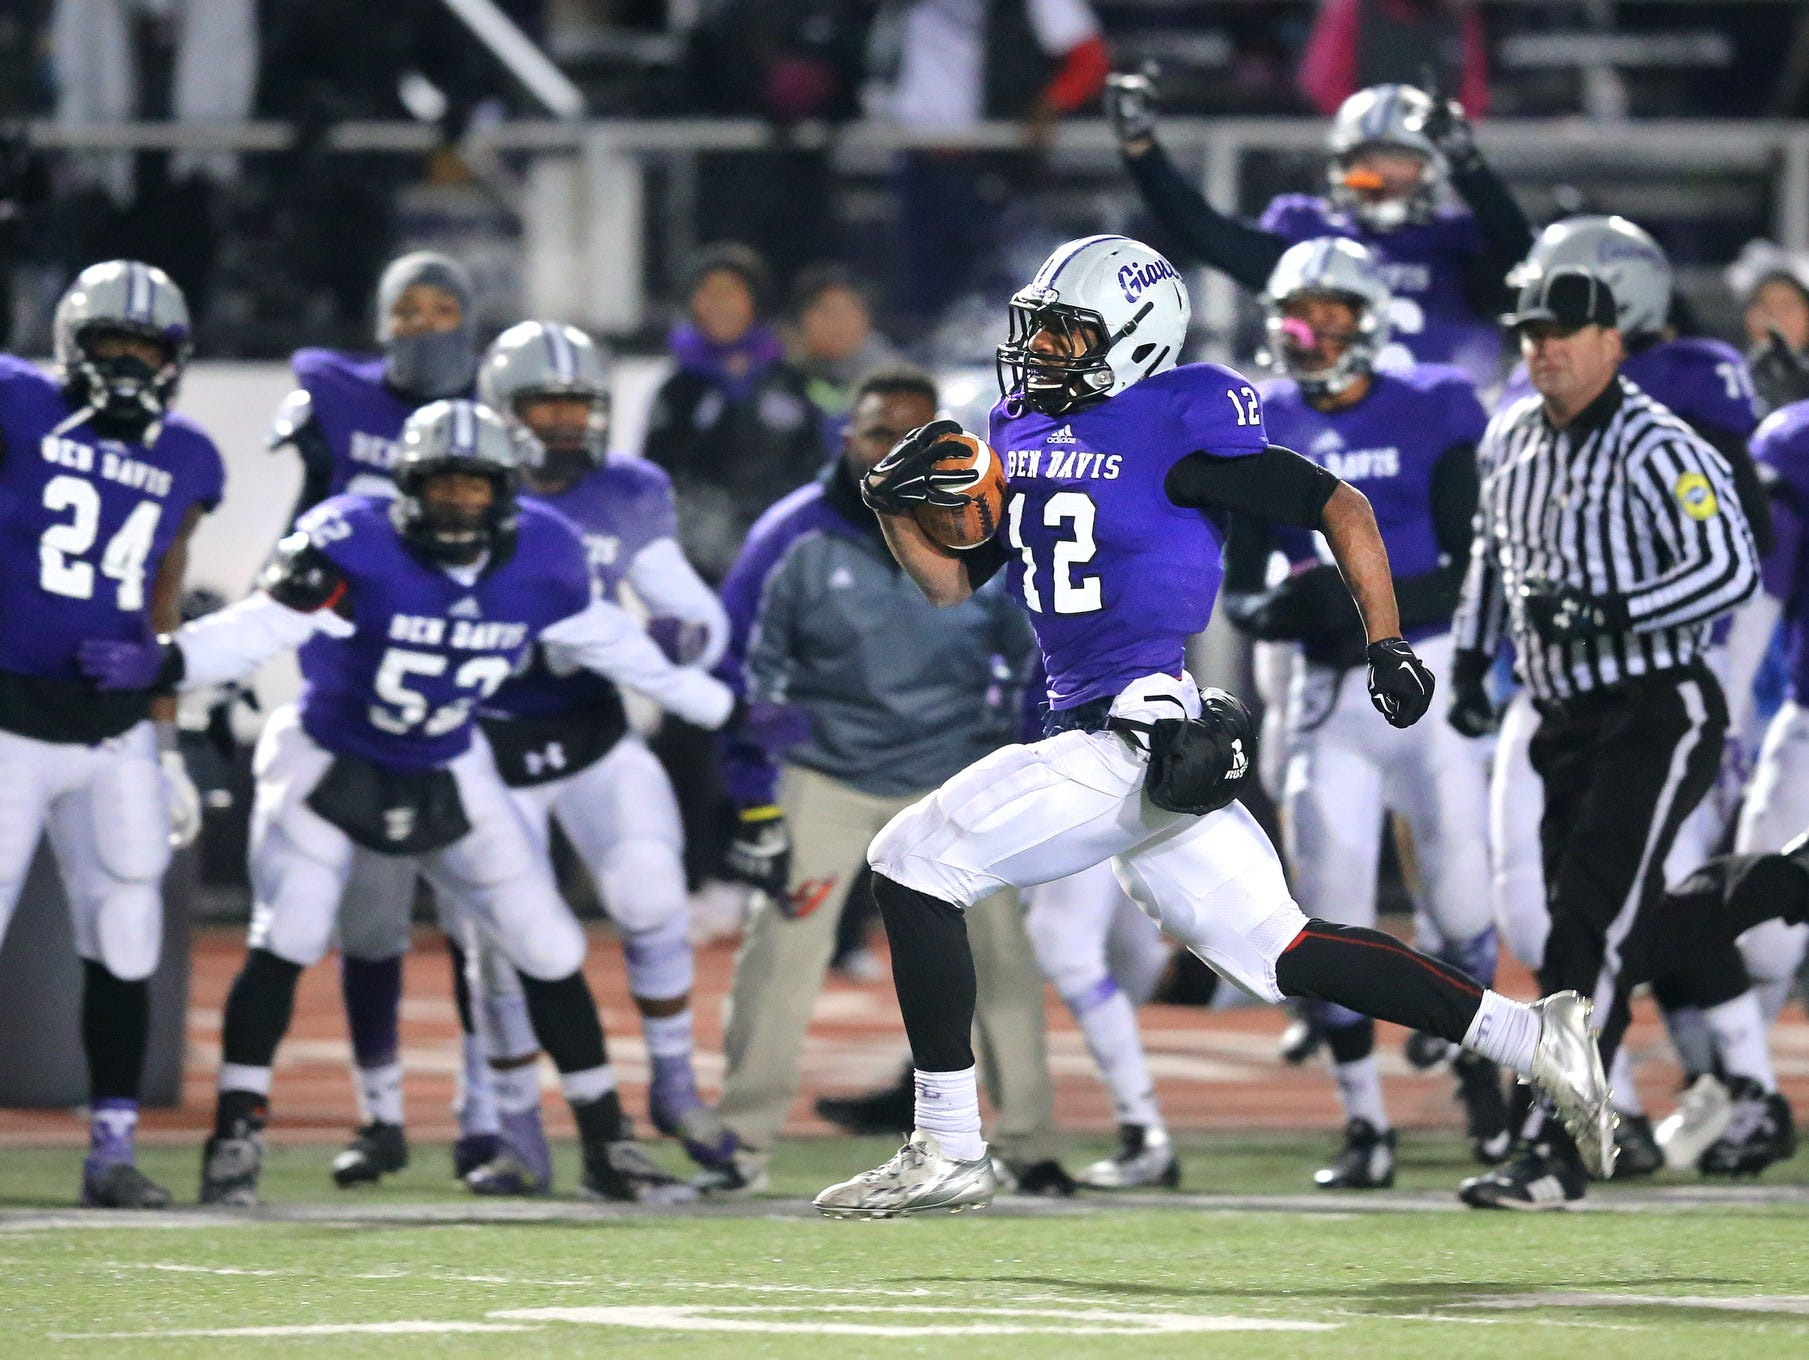 Ben Davis running back Chris Evans sprints down the sidelines for the winning touchdown as his team cheers him on in the final two minutes of the game. Ben Davis held on to beat Center Grove 49-45 in the IHSAA Semi-State game held at Ben Davis High School on Friday, Nov. 14, 2014.